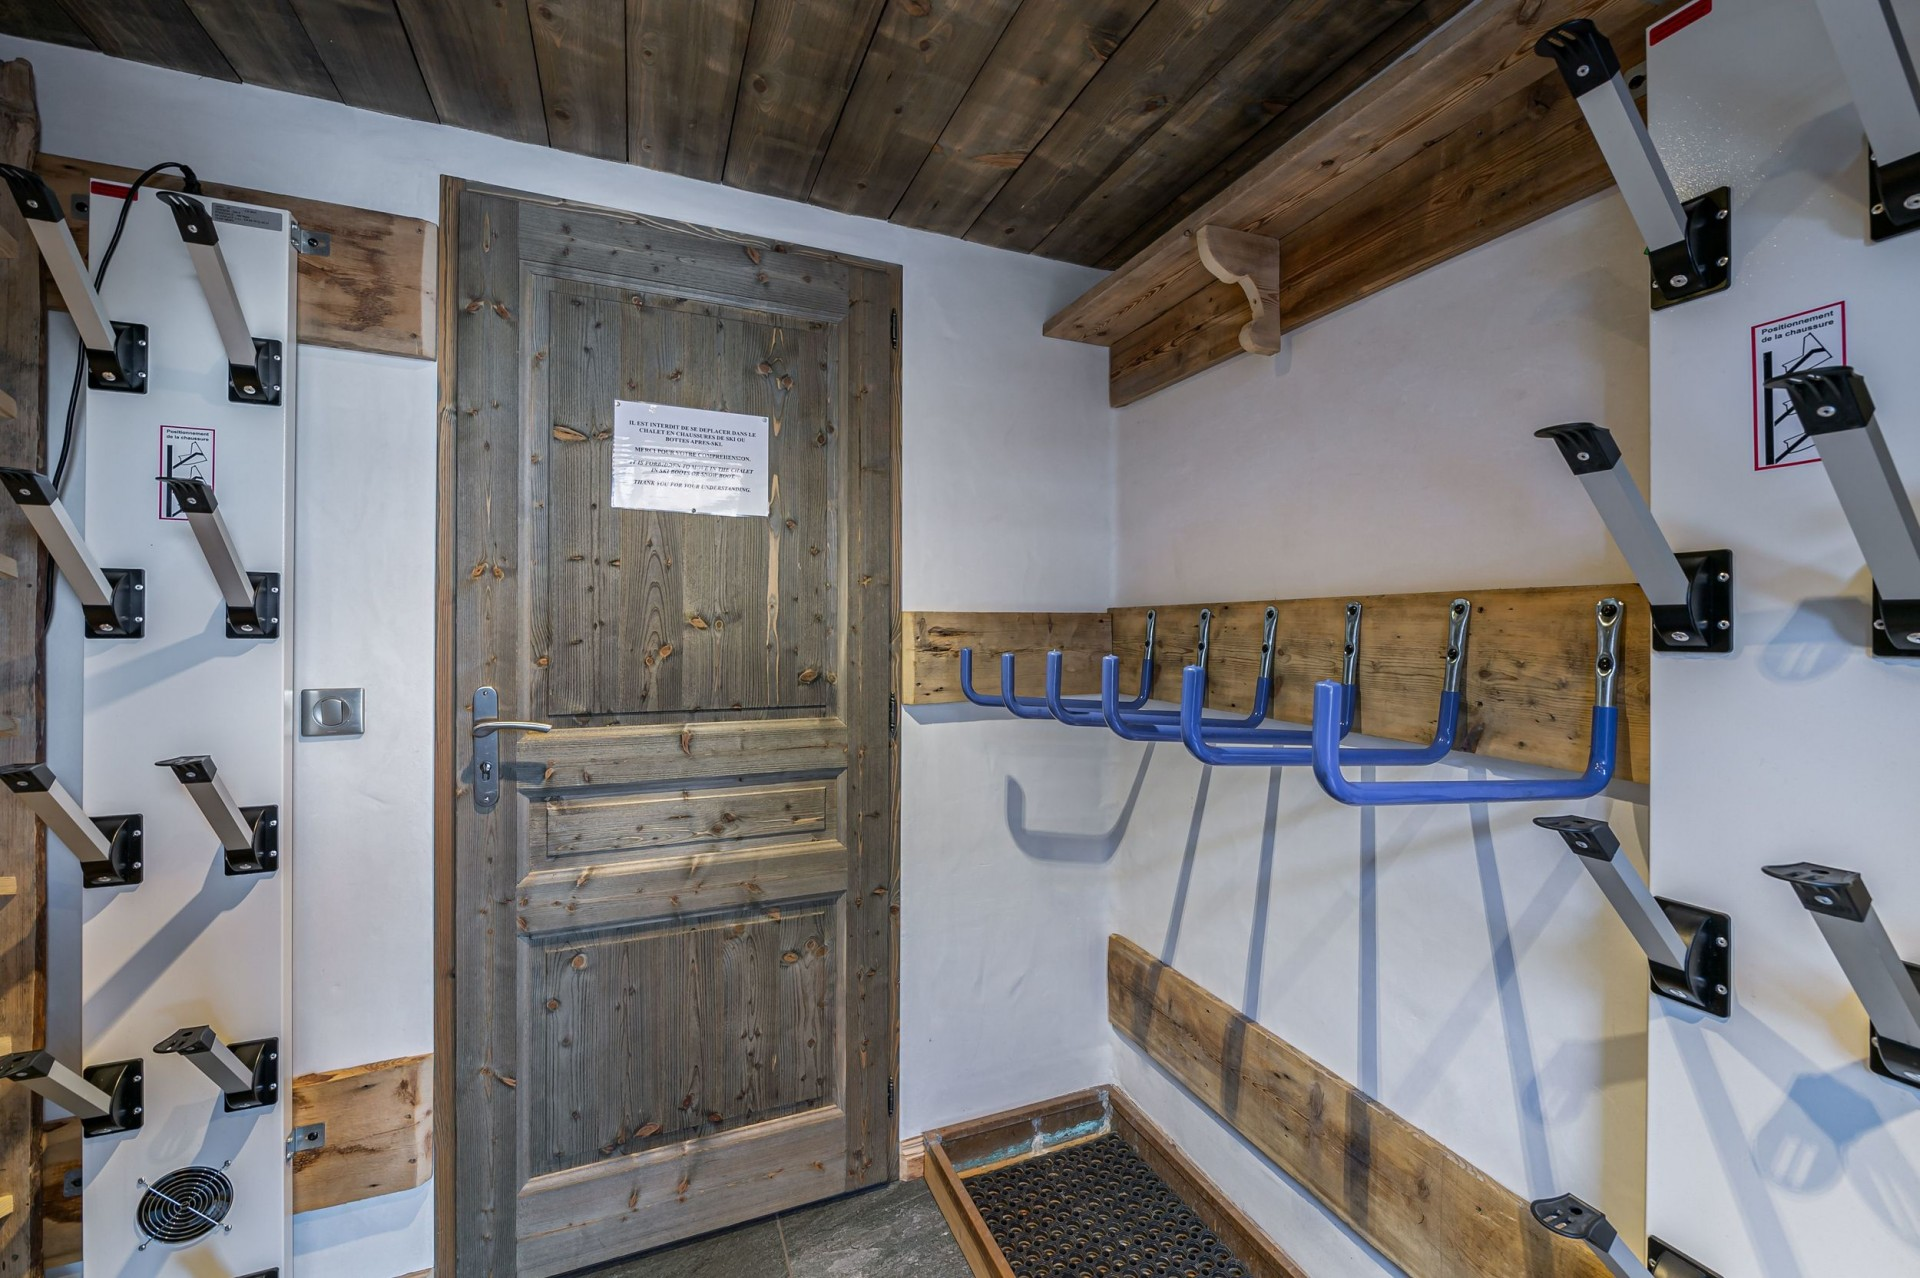 Courchevel 1300 Location Chalet Luxe Noubate Local A Ski